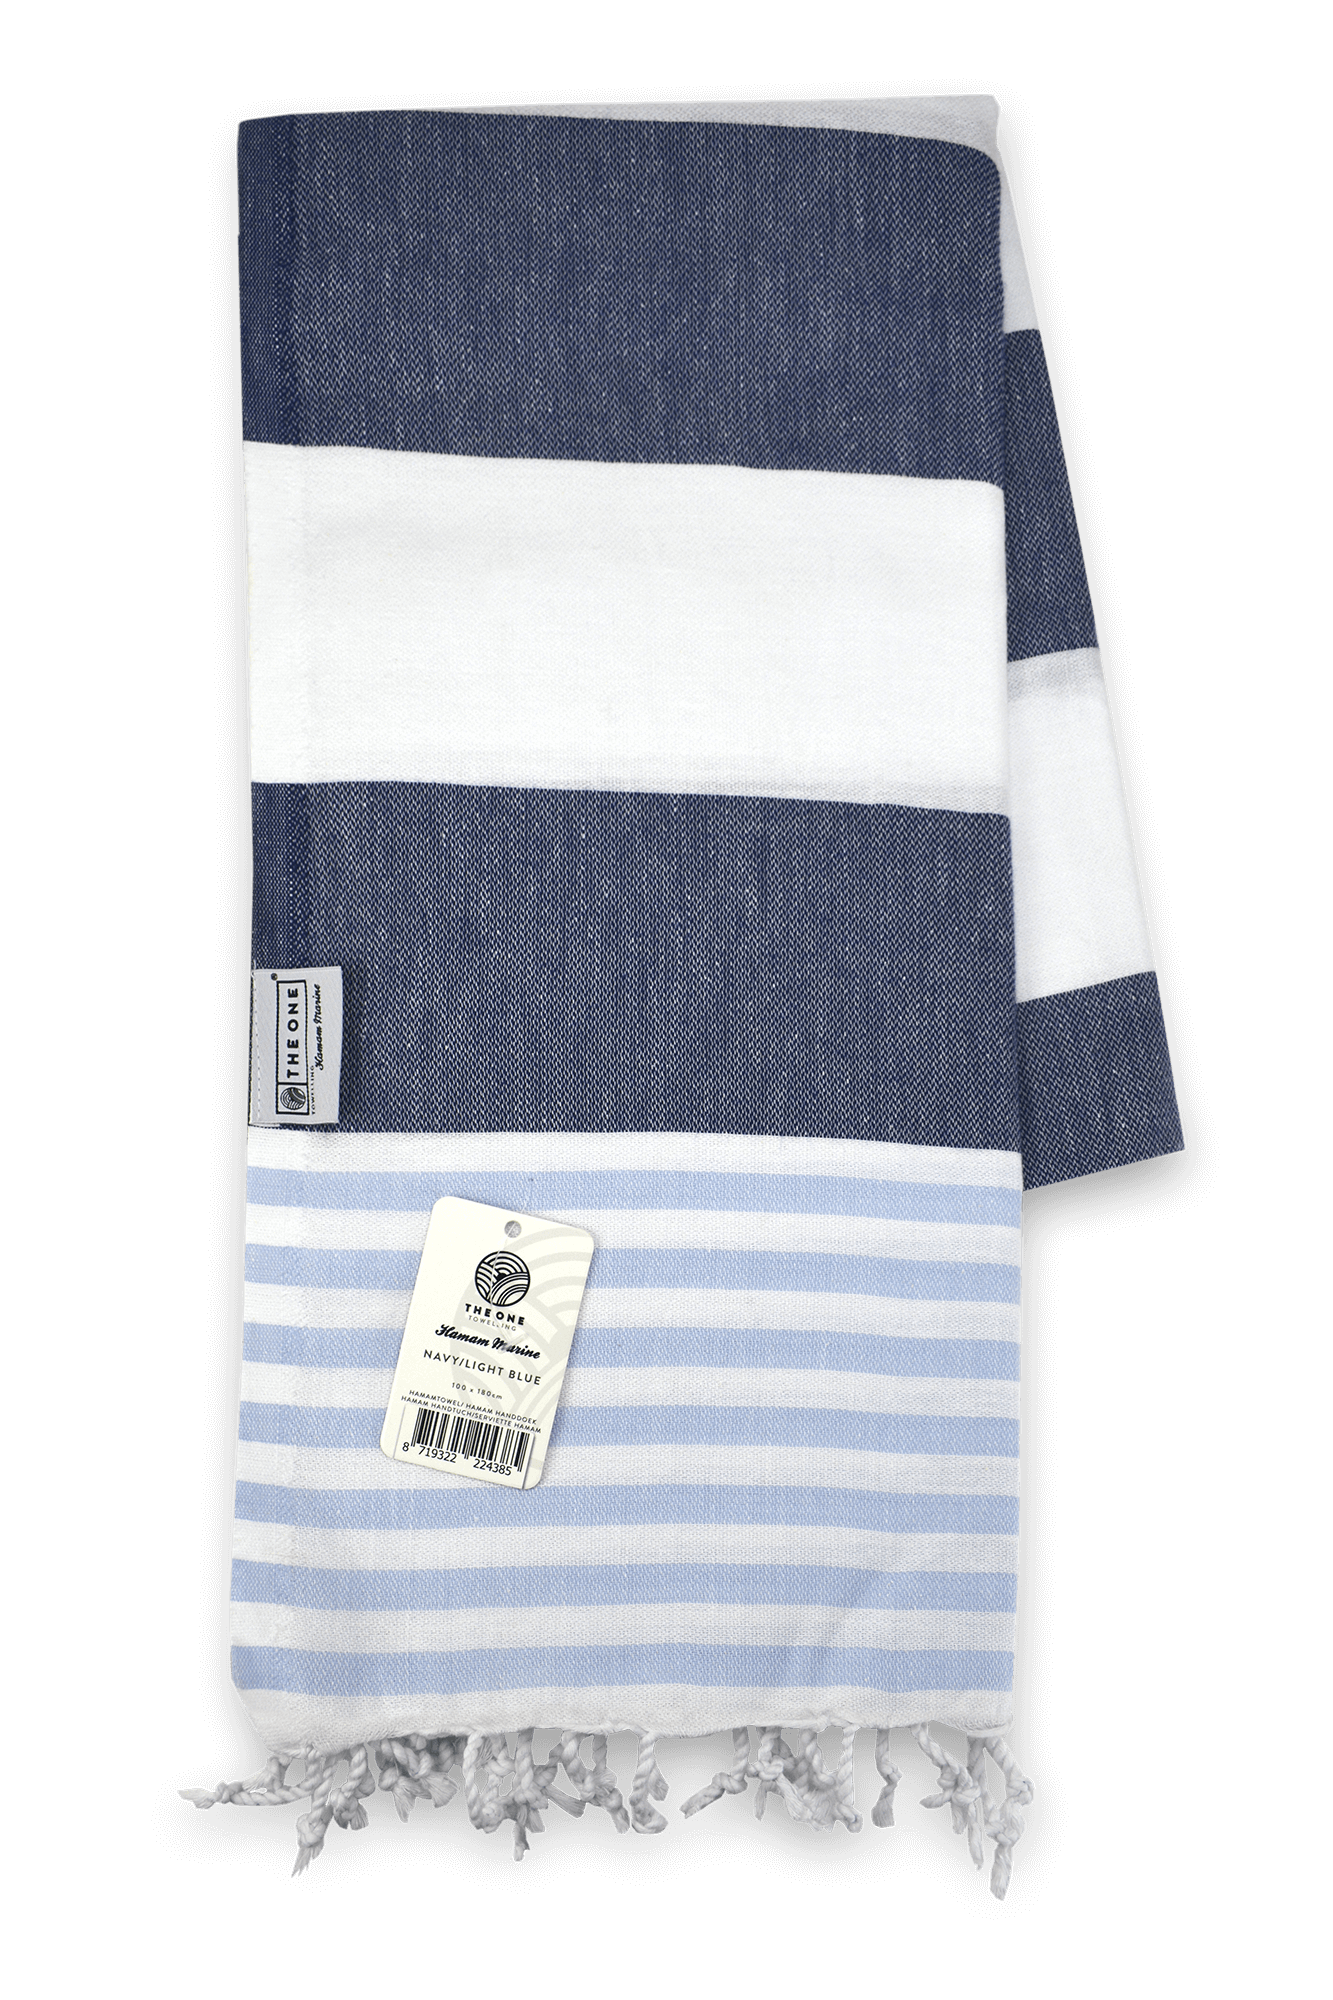 Hamamdoek navy lightblue